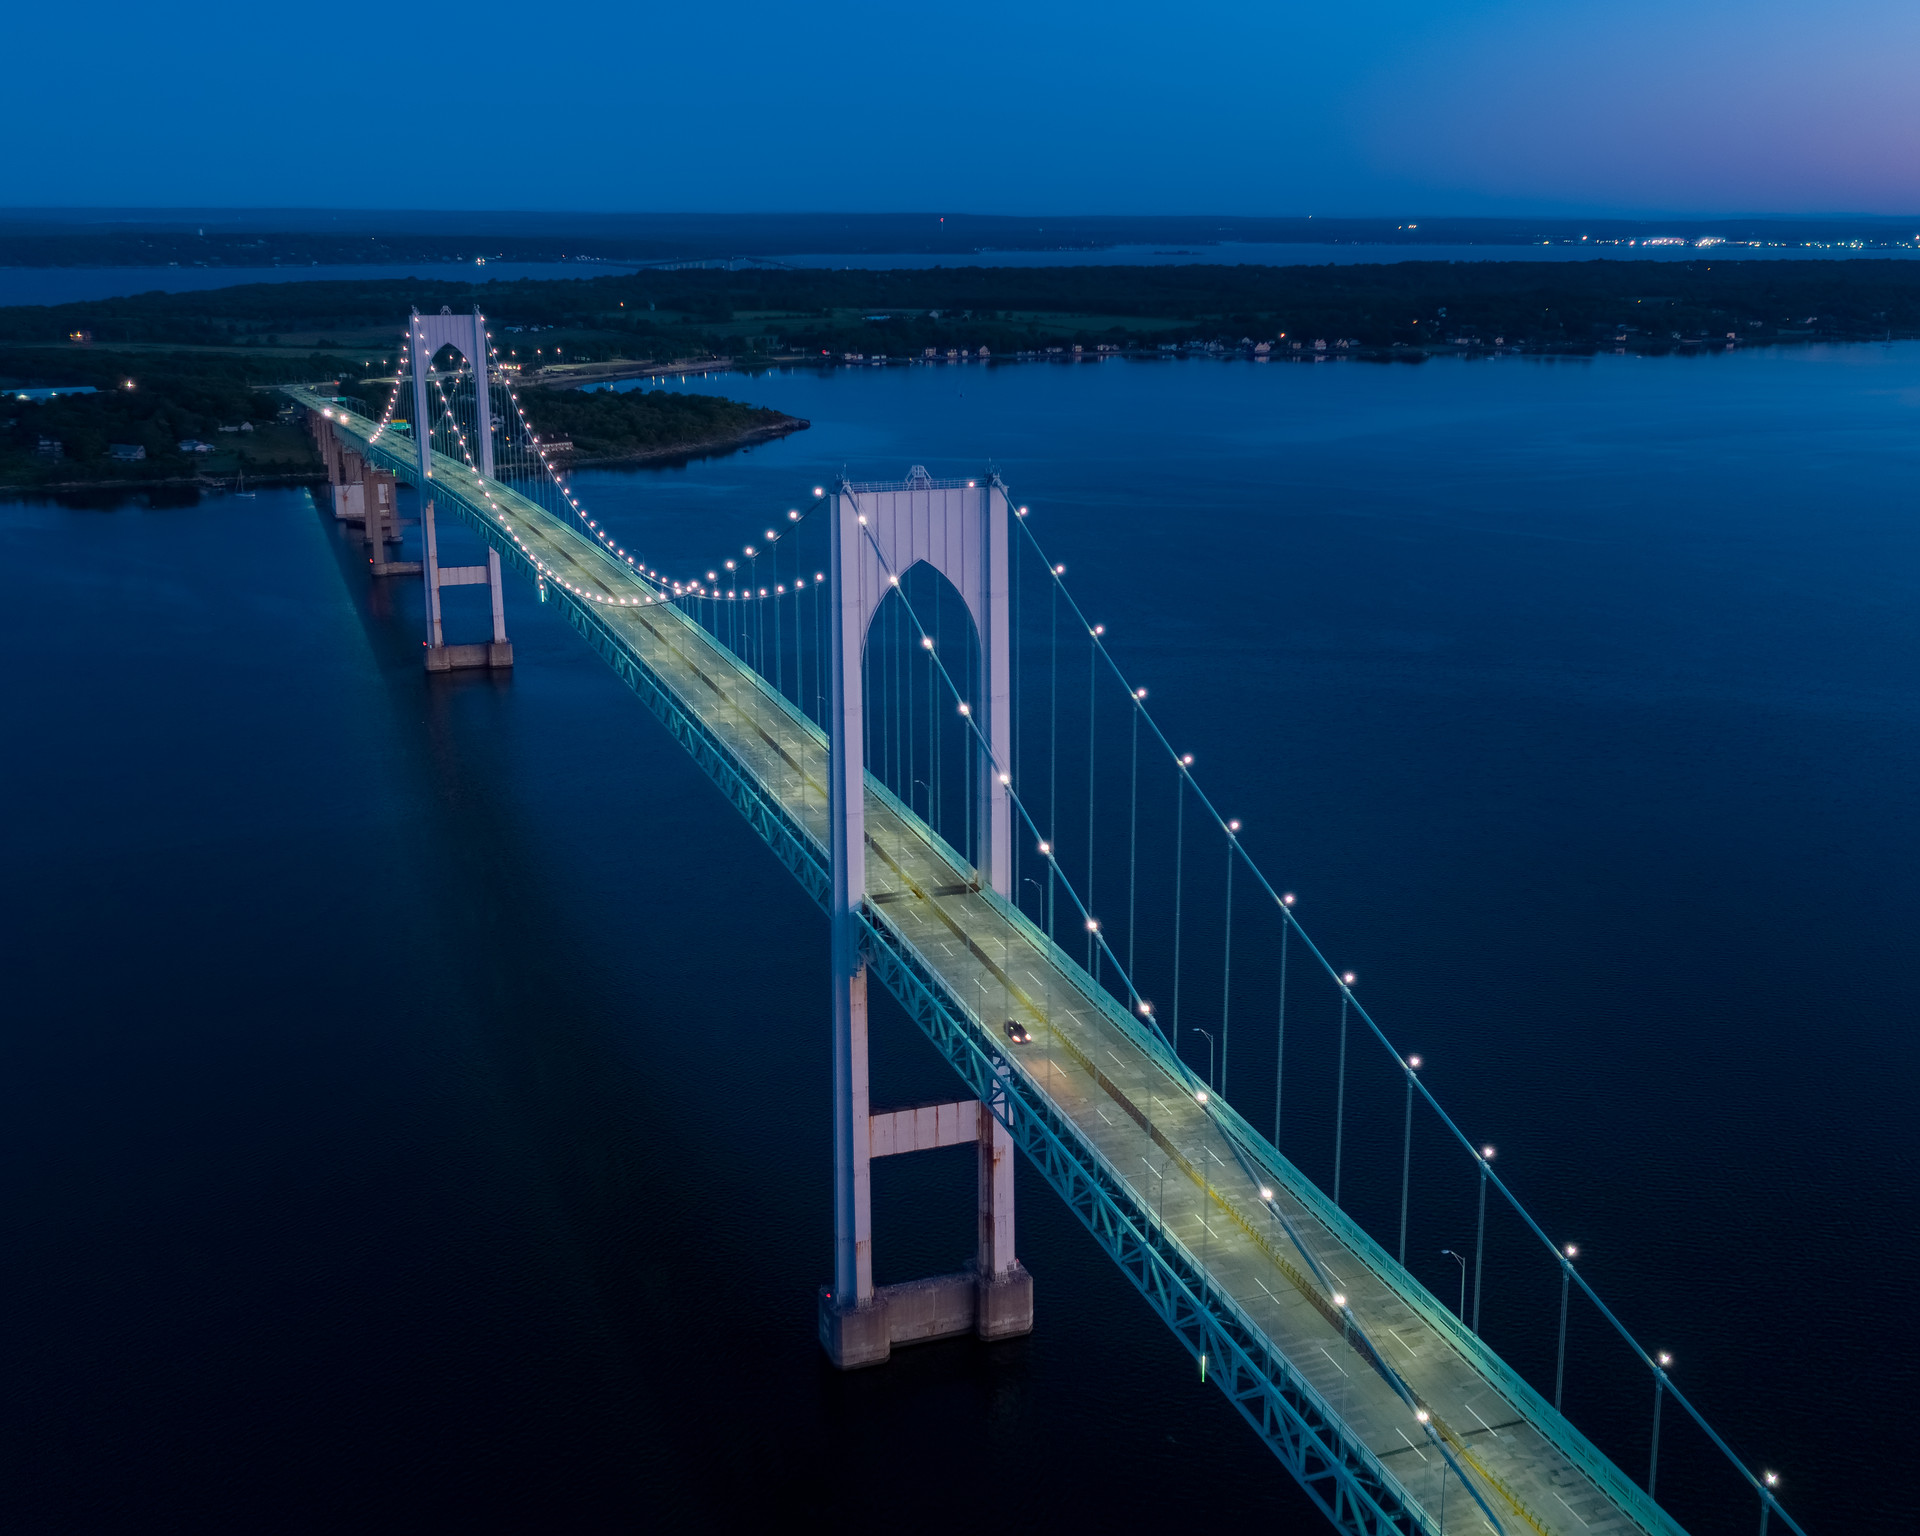 Newport_Pell_Bridge_boston-aerials.com.j